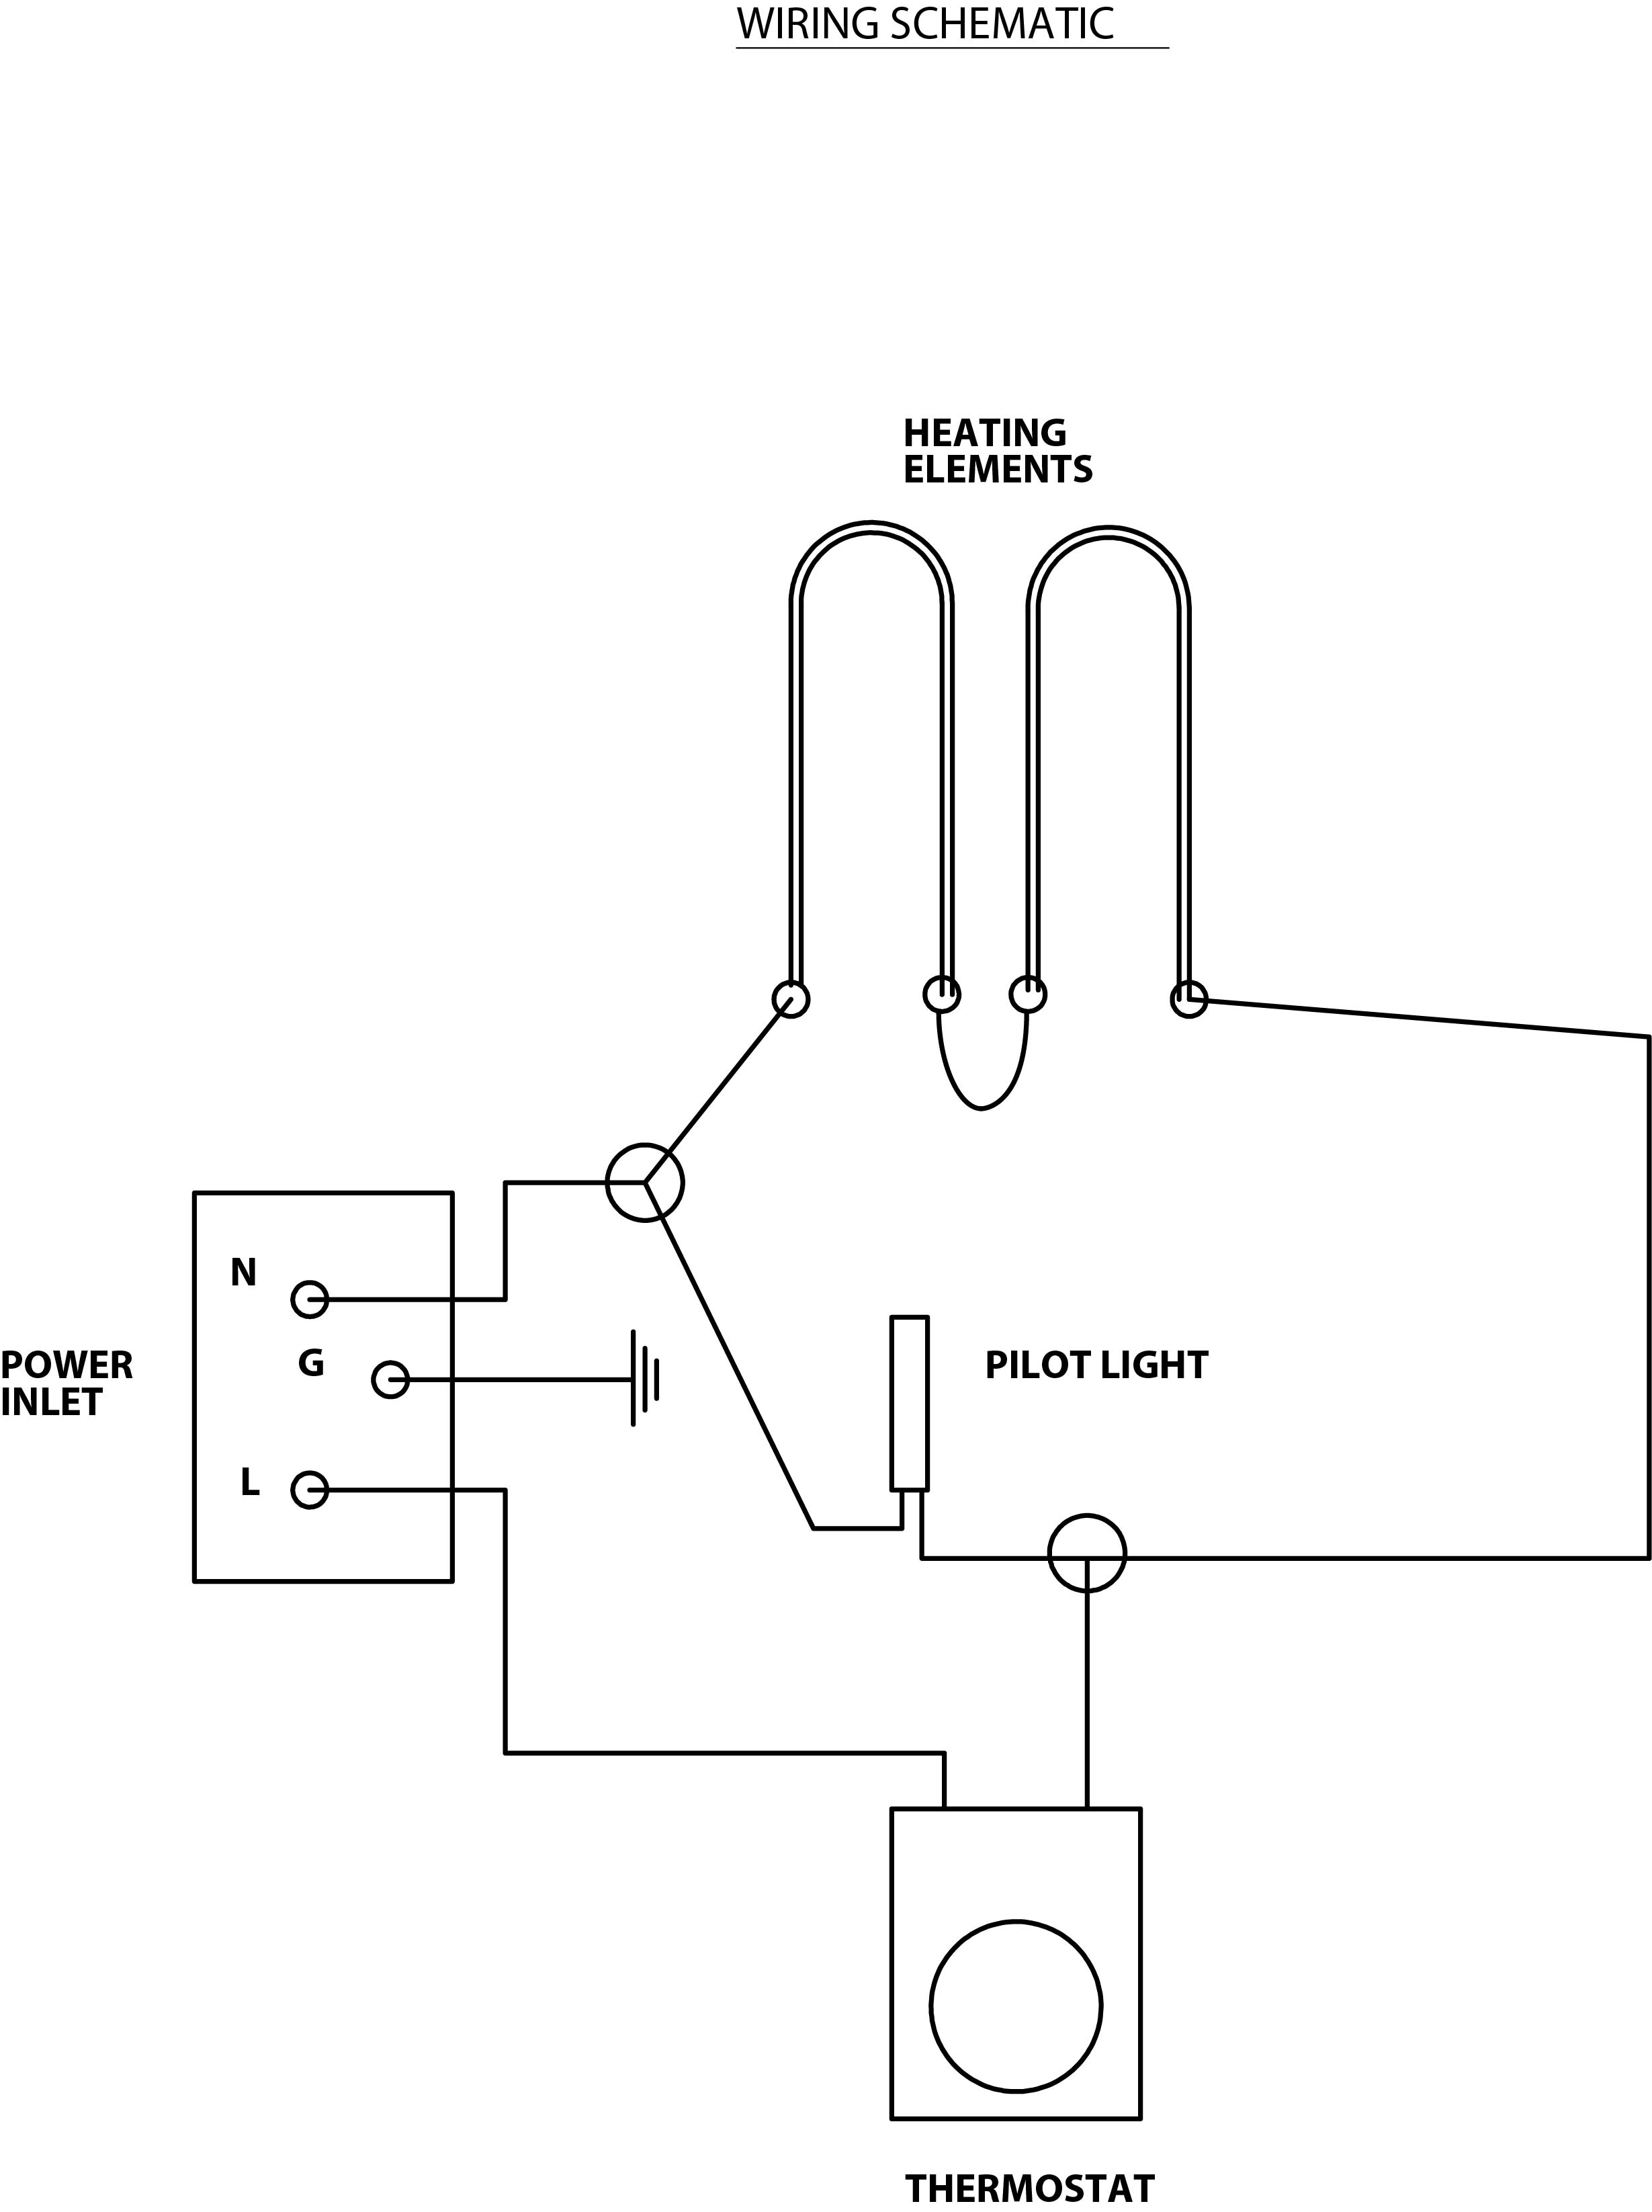 460 220 volt wiring diagram